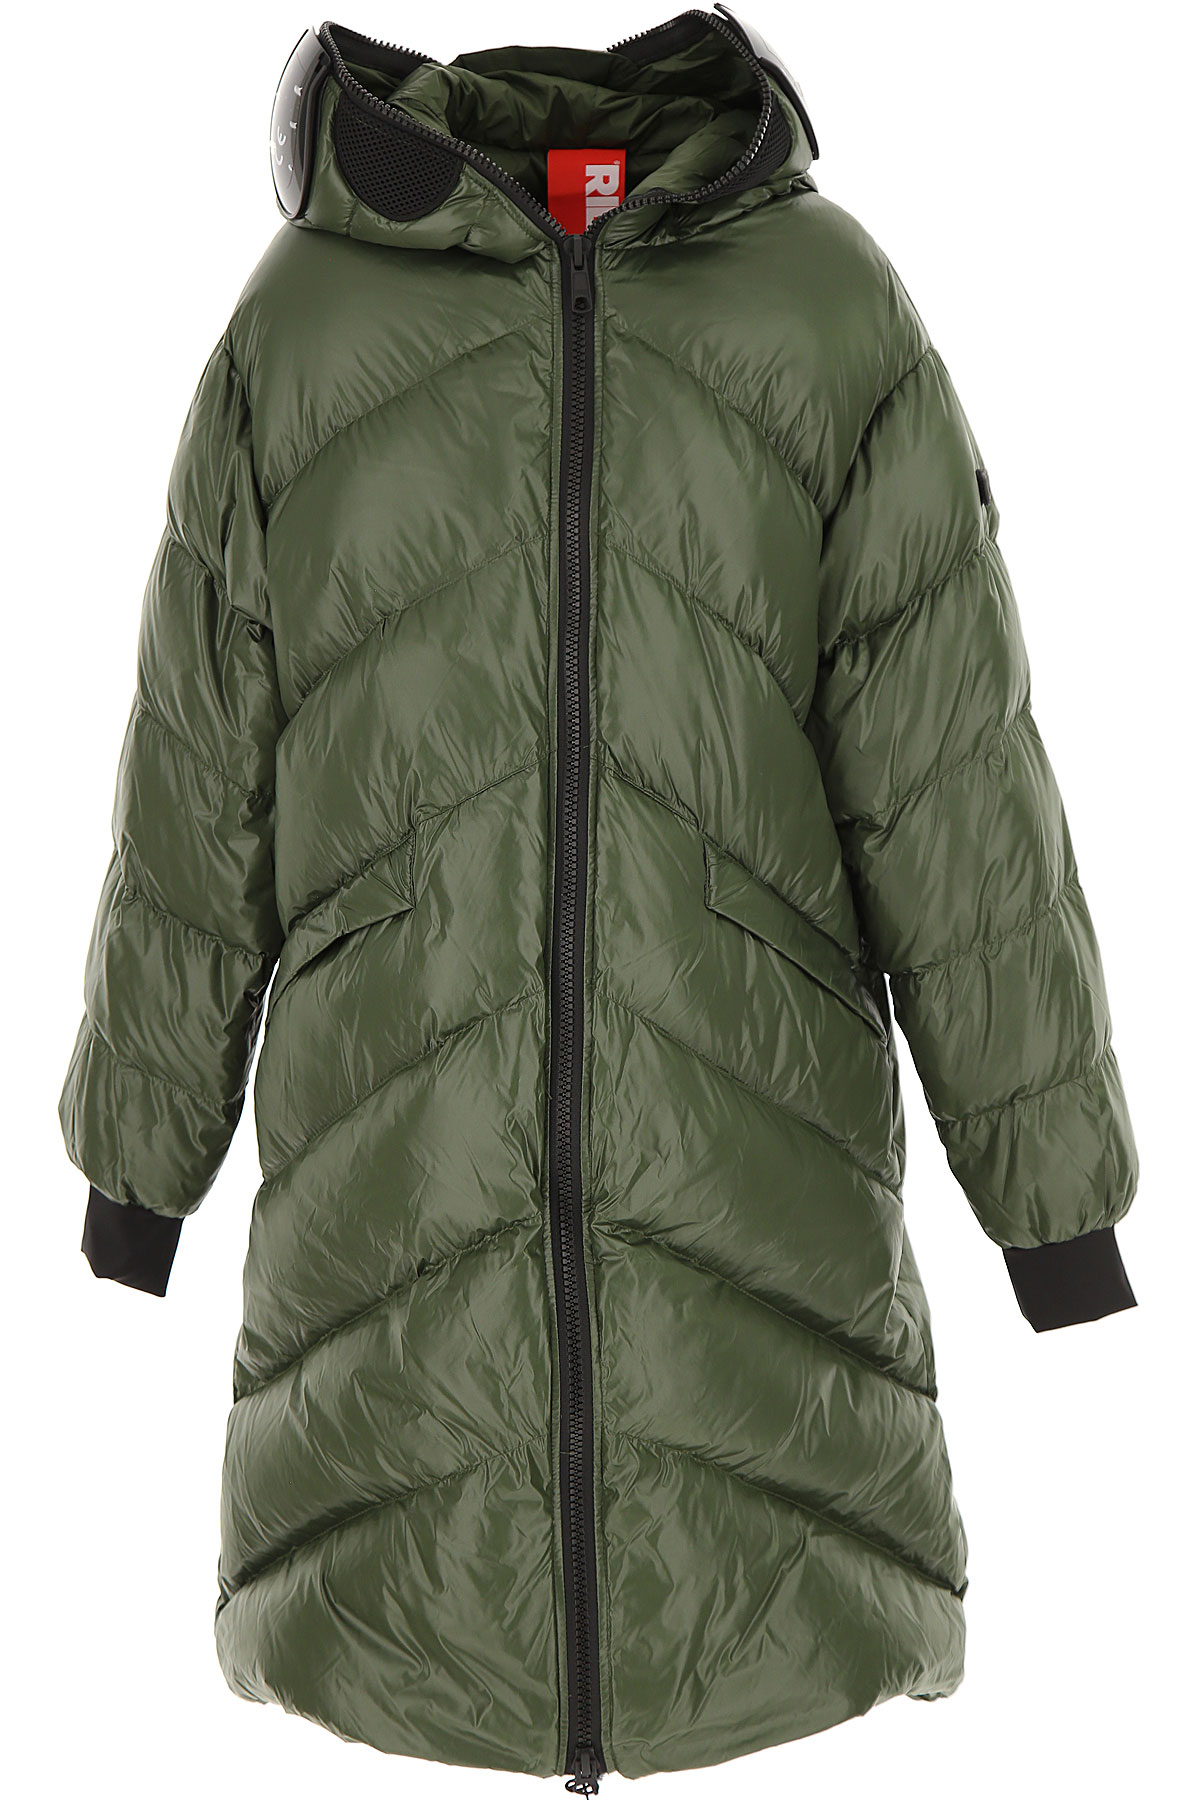 Ai Riders On The Storm Girls Down Jacket for Kids, Puffer Ski Jacket On Sale, Green, Nylon, 2019, 14Y 16Y